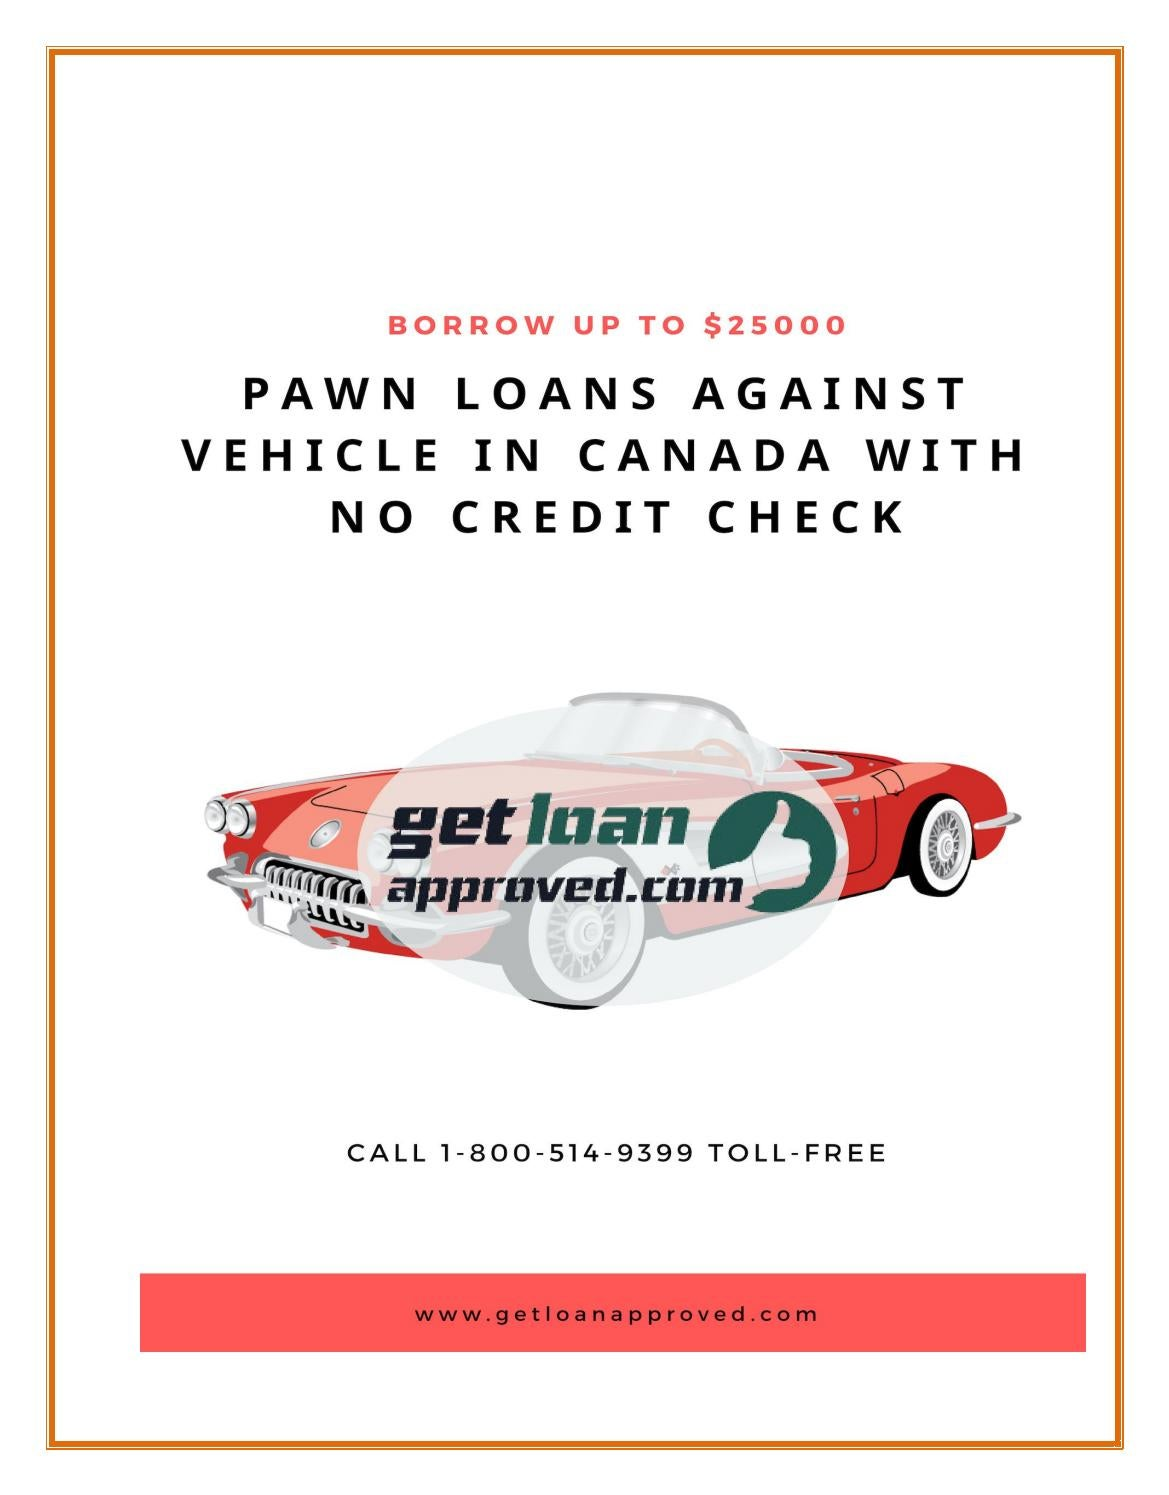 No Credit Check Car Loans >> Pawn Loans Against Vehicle In Canada With No Credit Check By